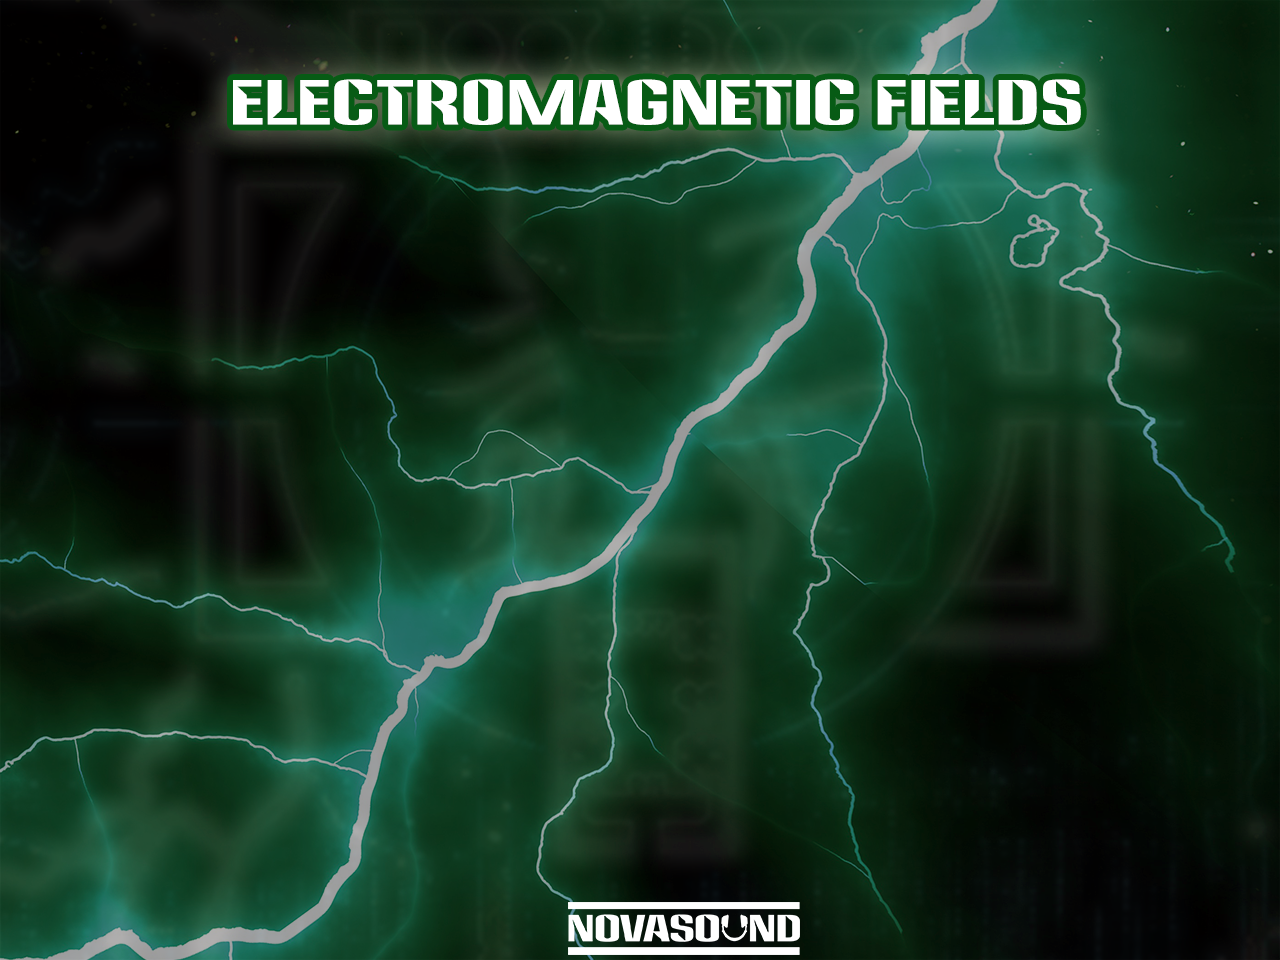 electromagnetism and magnetic field There are many sources of electromagnetic fields some people worry about em  exposure and cancer, but research is inconclusive.